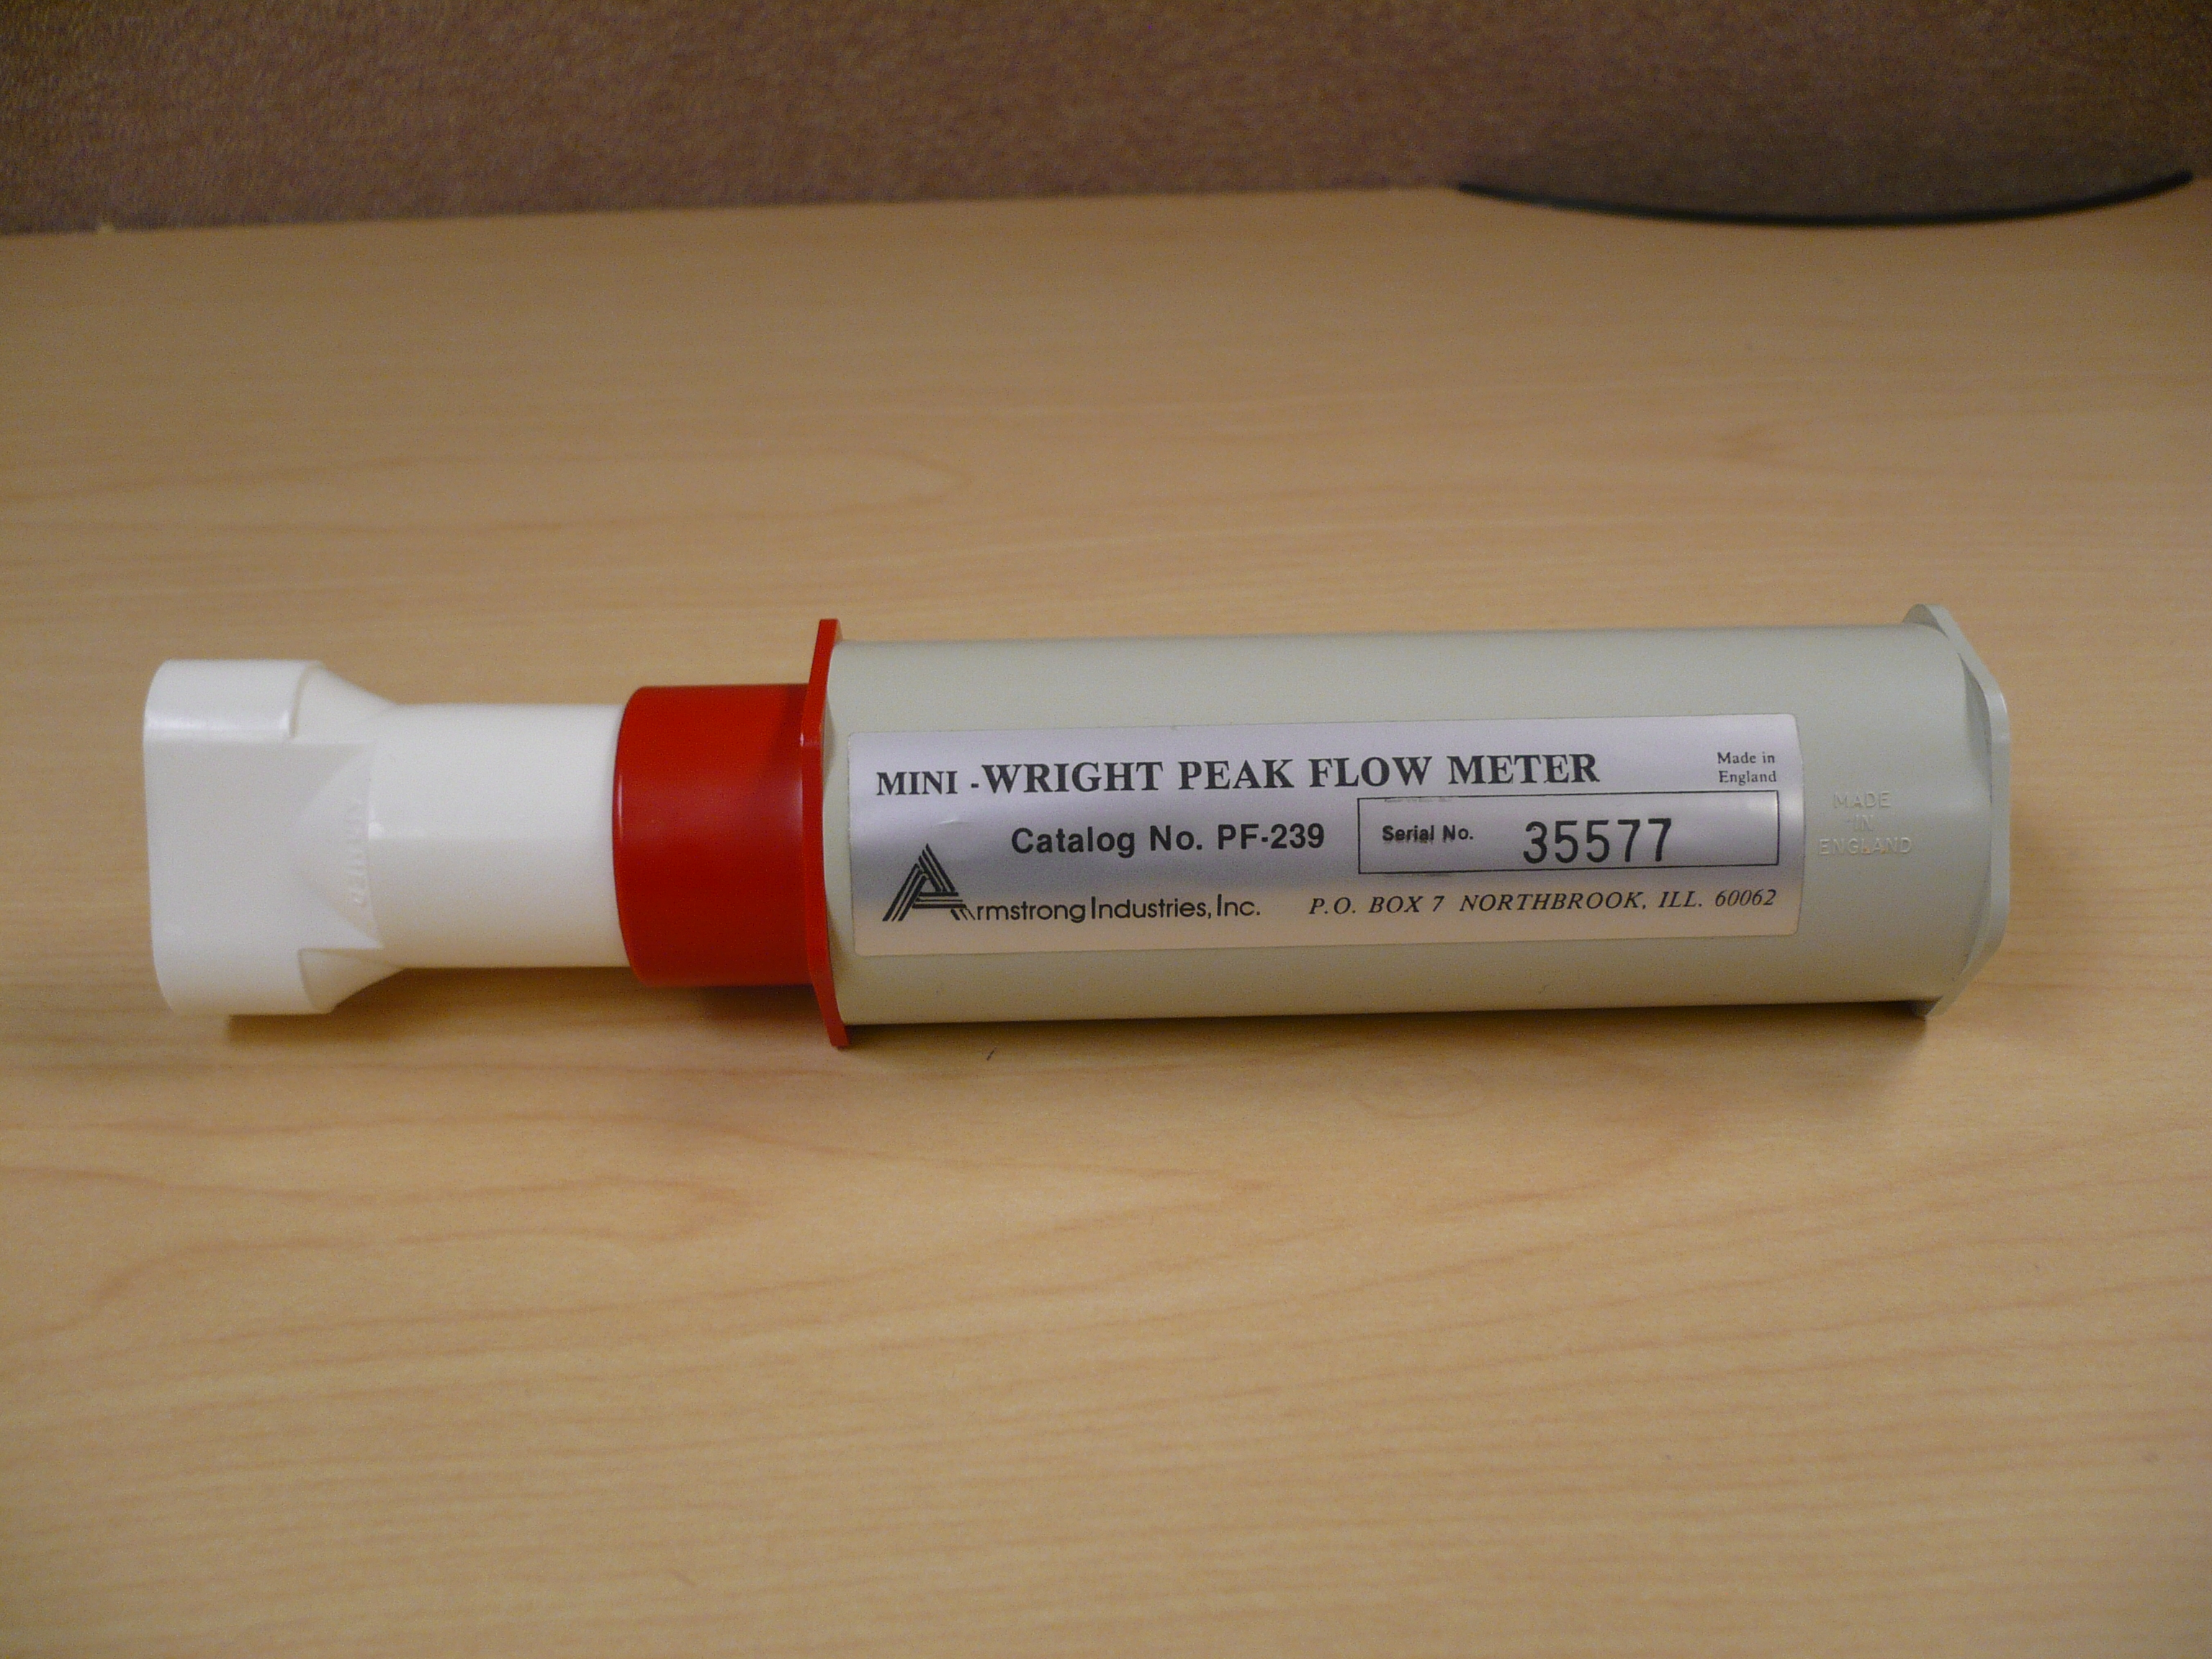 Mini-Wright Peak Flow Meter